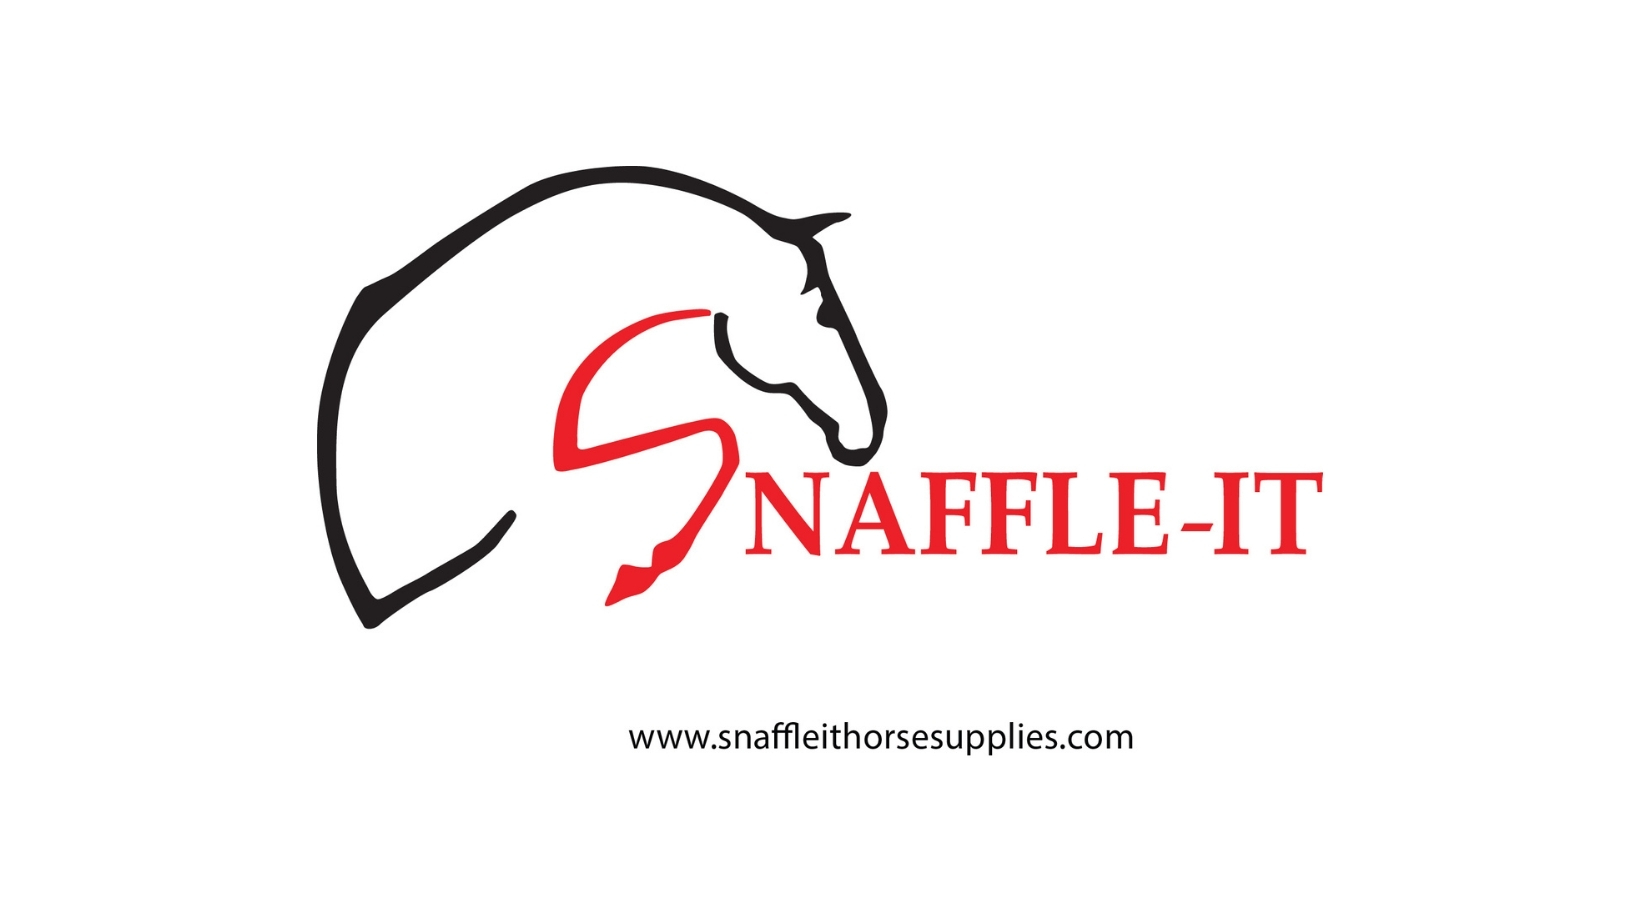 snaffle-it-horse-supplies.jpg